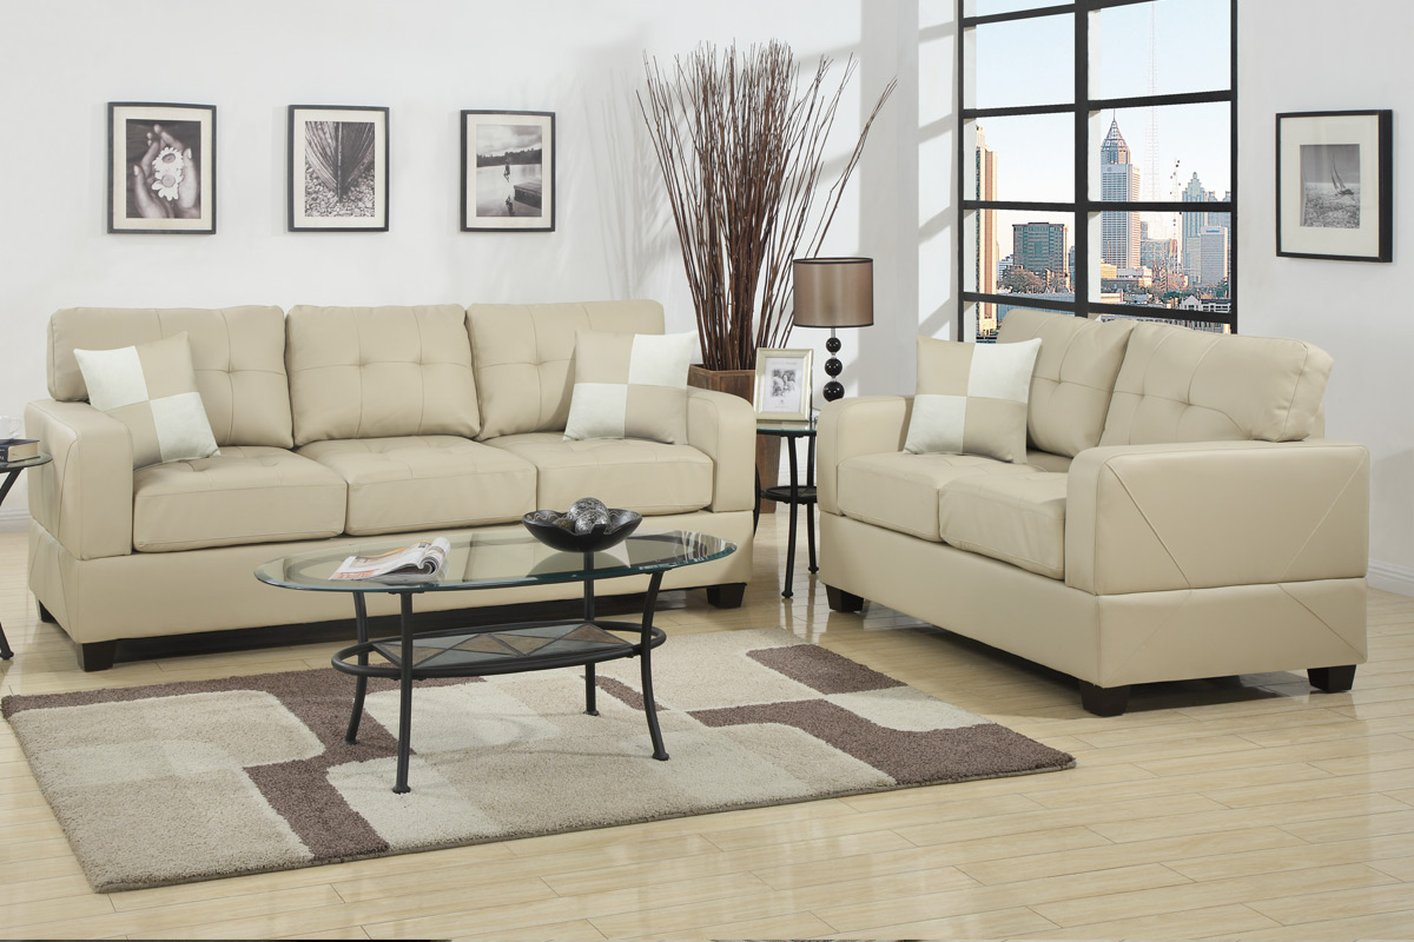 Poundex Chase F7342 Beige Leather Sofa And Loveseat Set Steal A Sofa Furniture Outlet Los